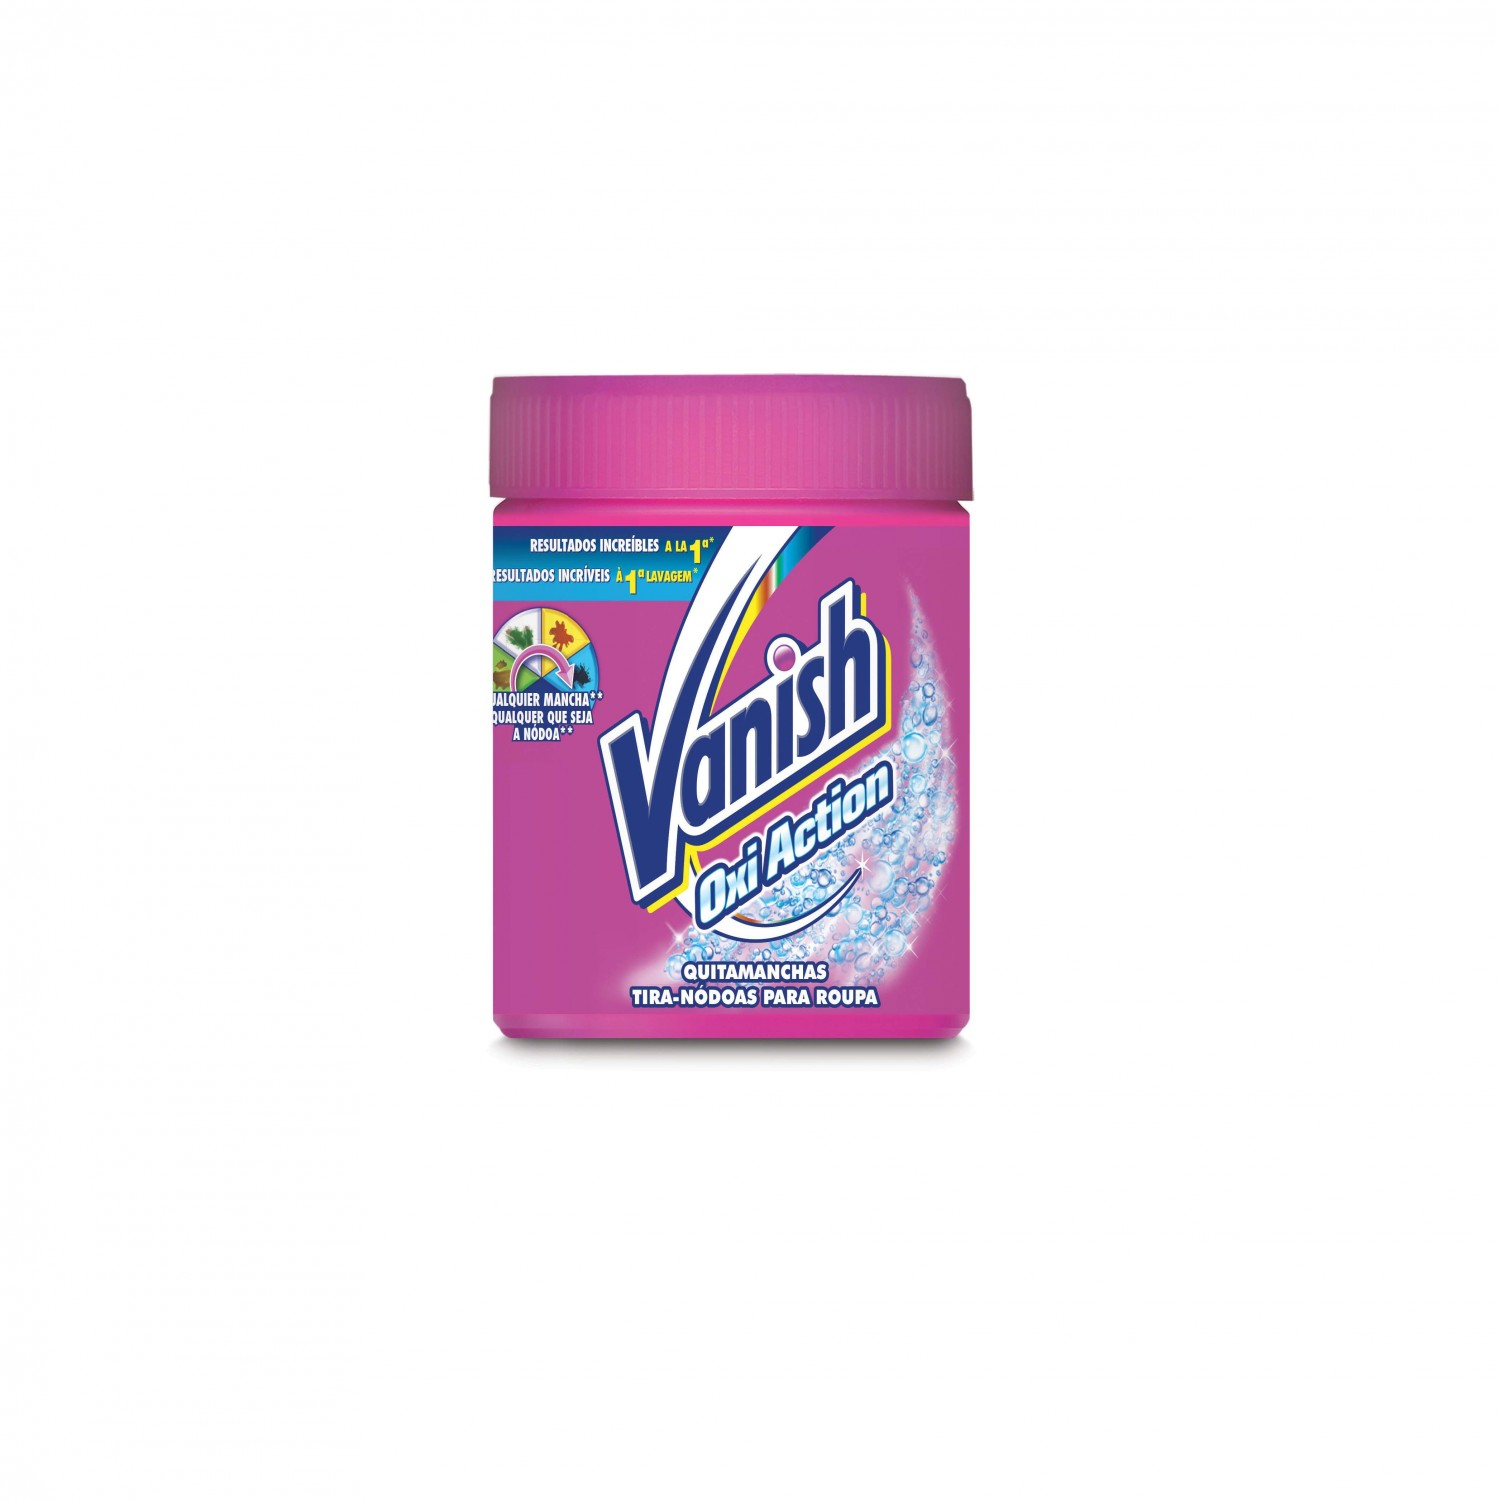 Vanish oxi action de 1kg. en bote